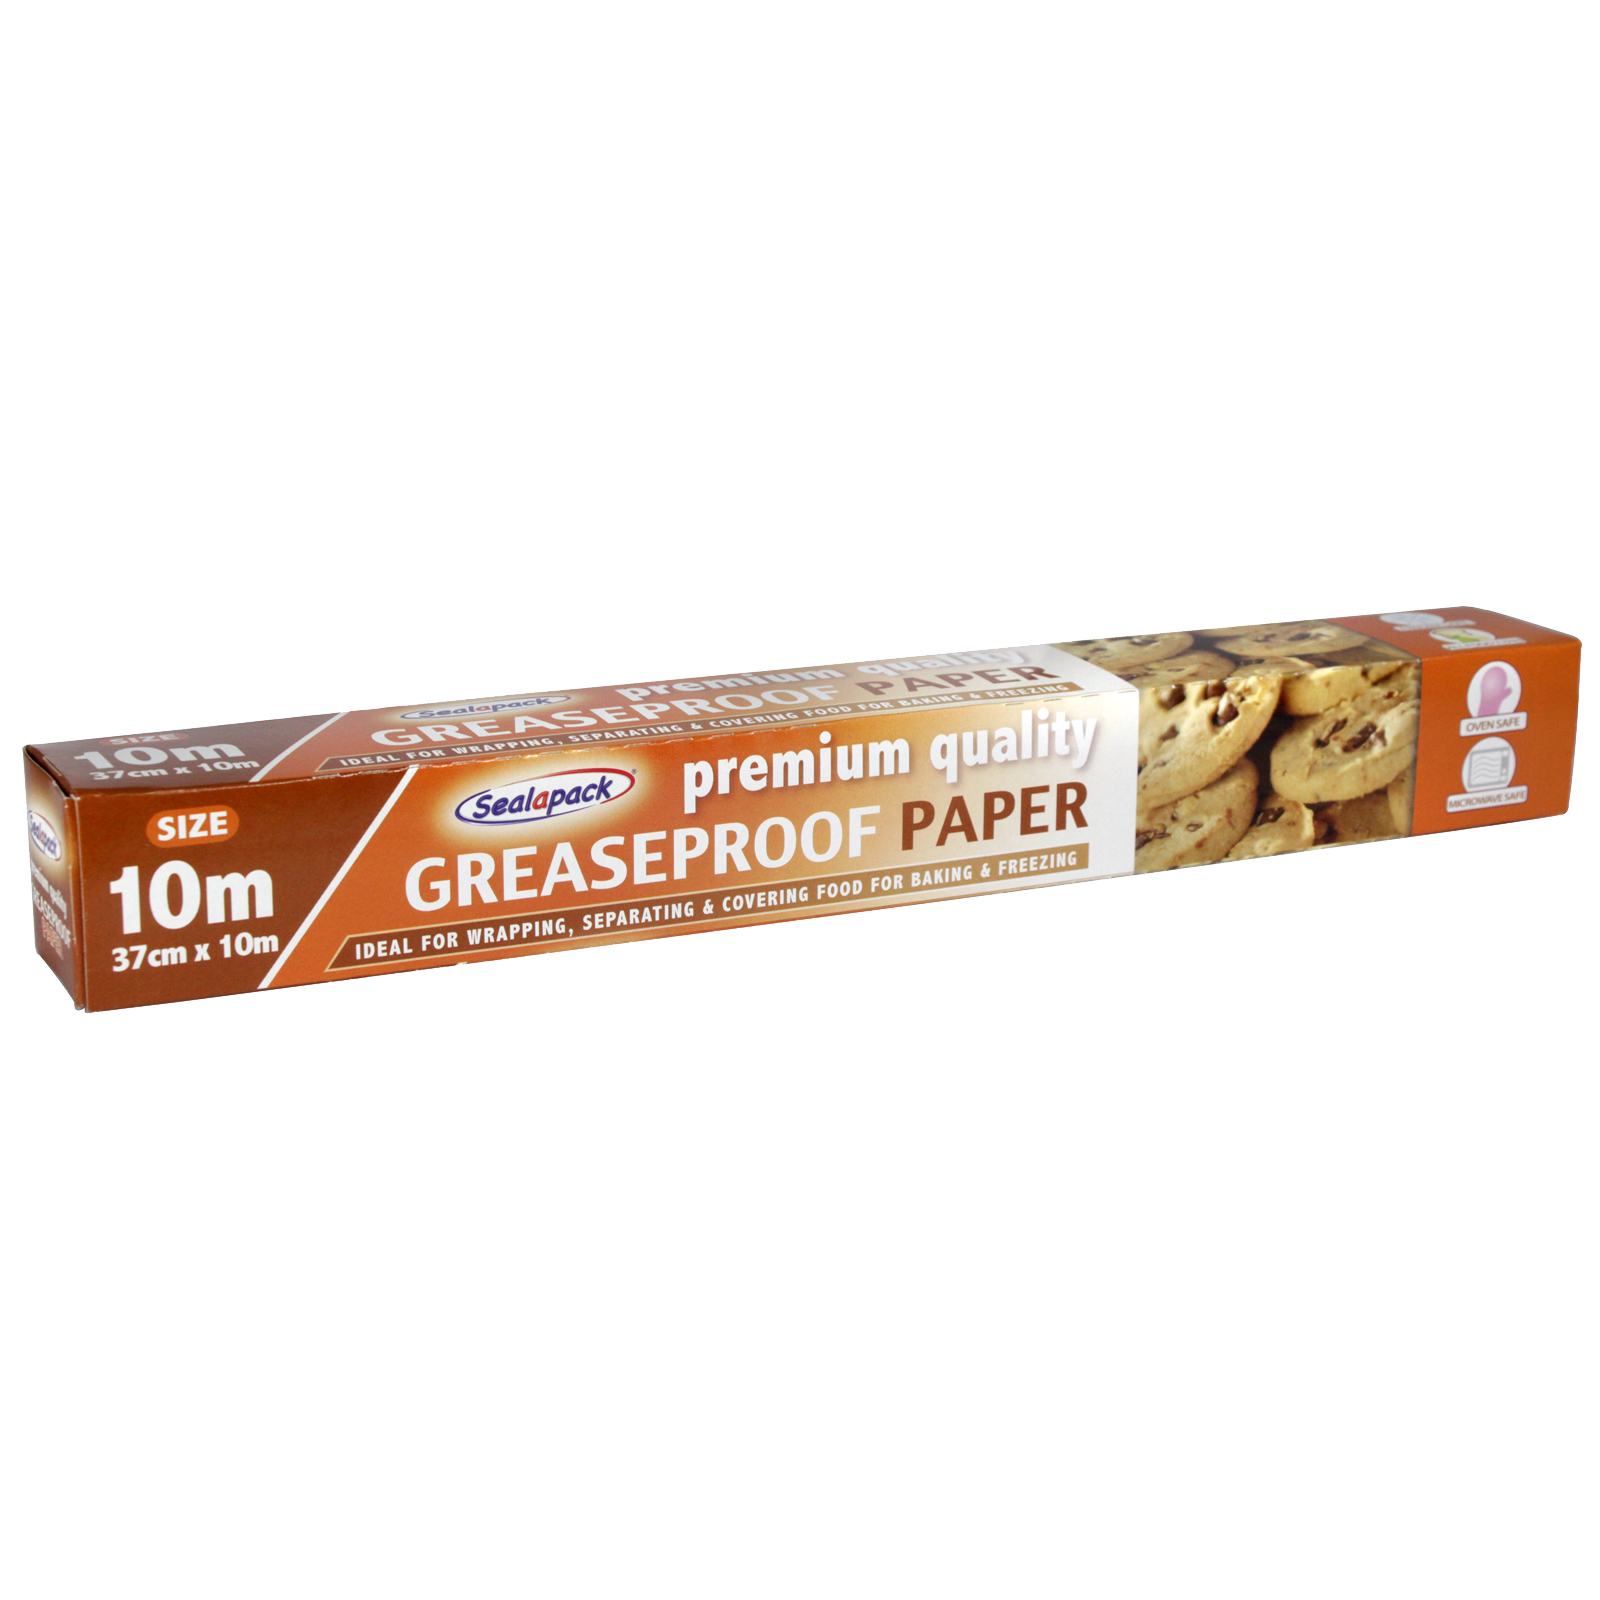 SEALAPACK GREASEPROOF PAPER 37CMX10M